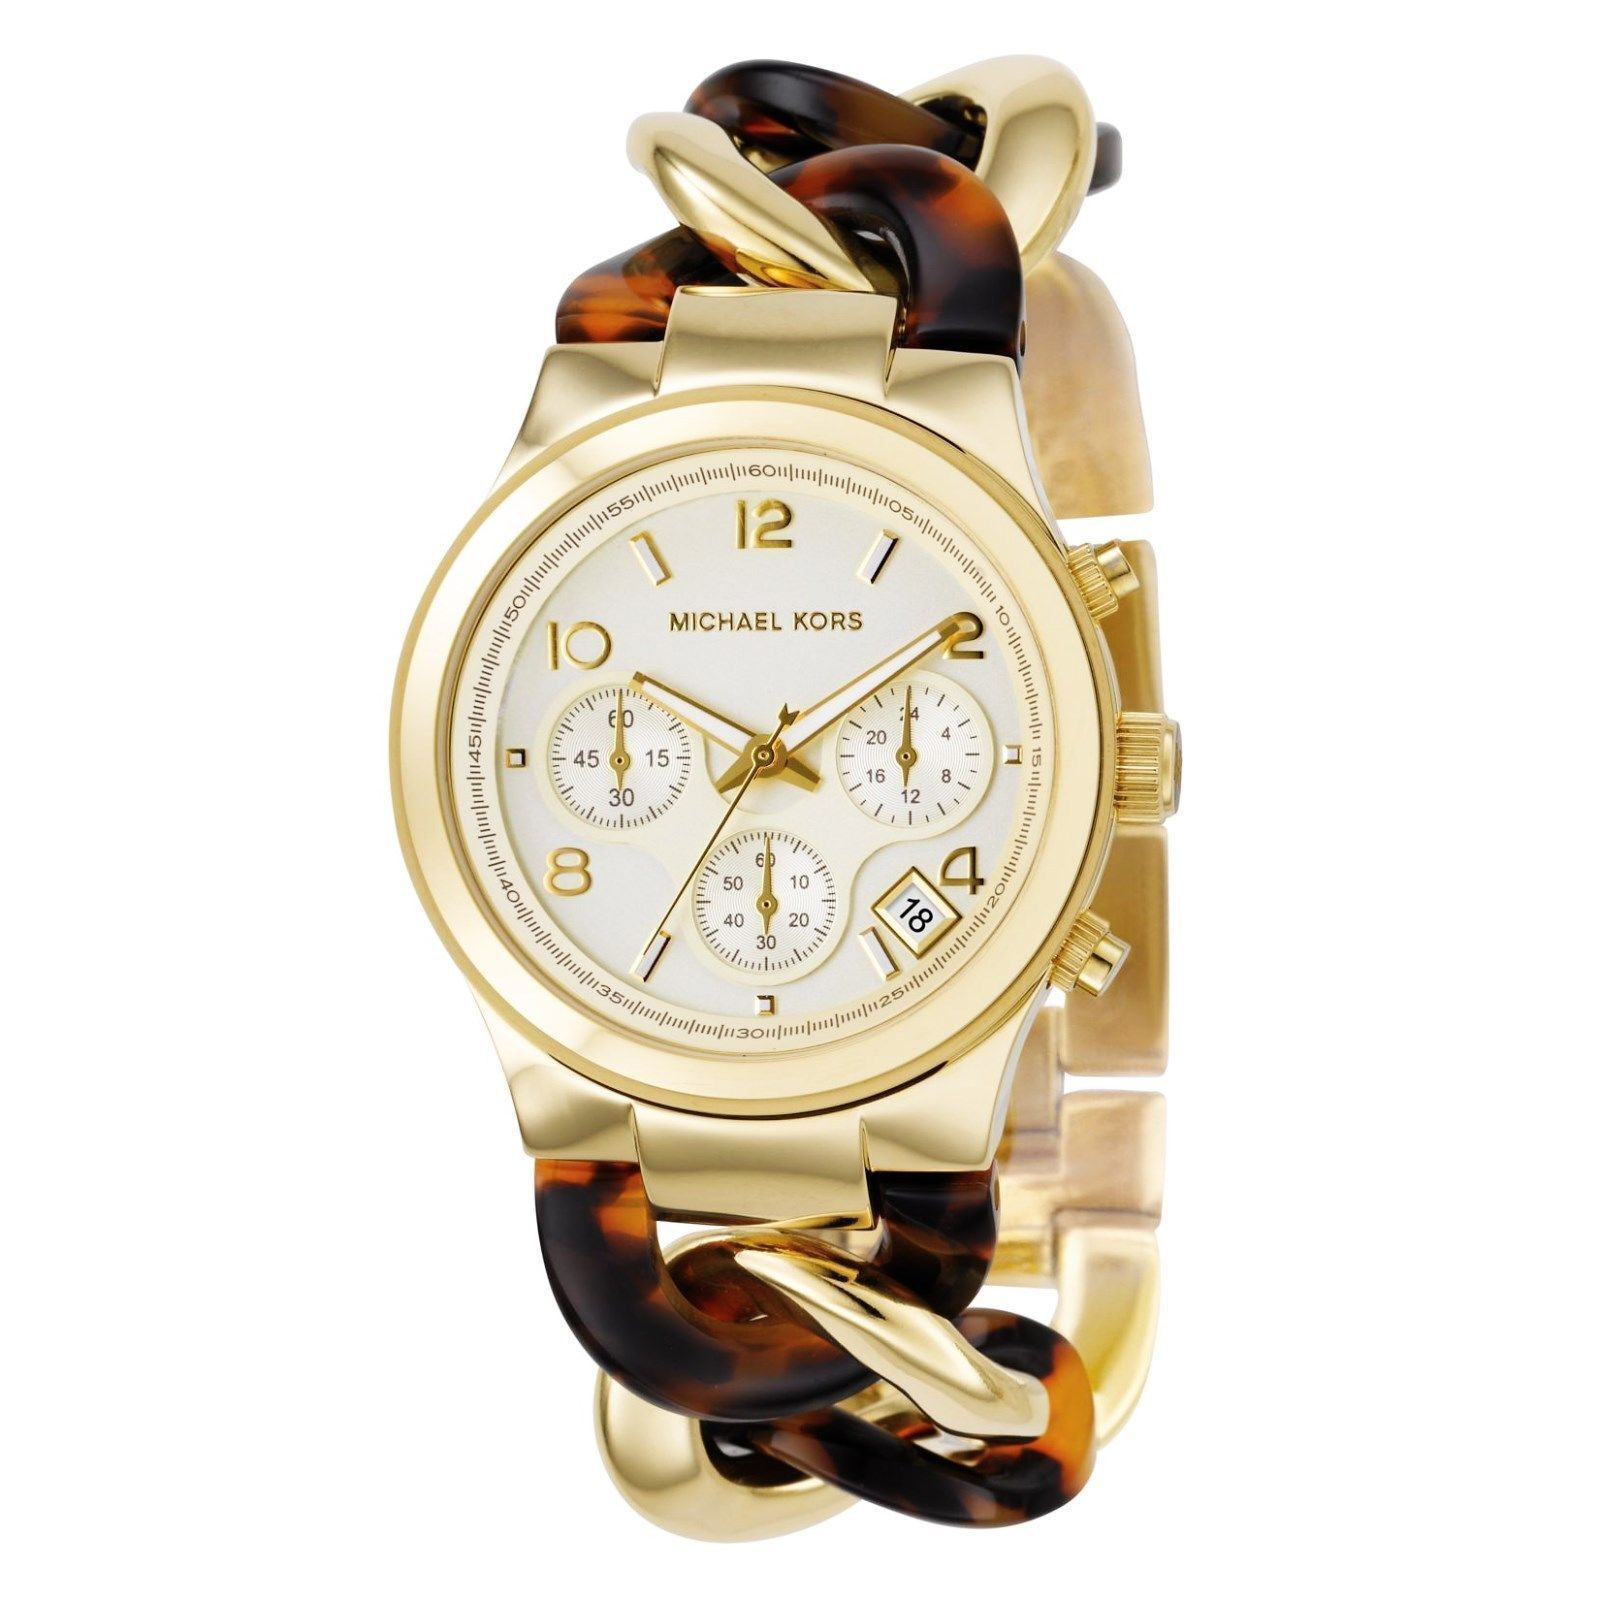 87447f7fd3a53 Michael Kors MK4222 Chain Link Acrylic Gold-Tone Ladies Watch for ...